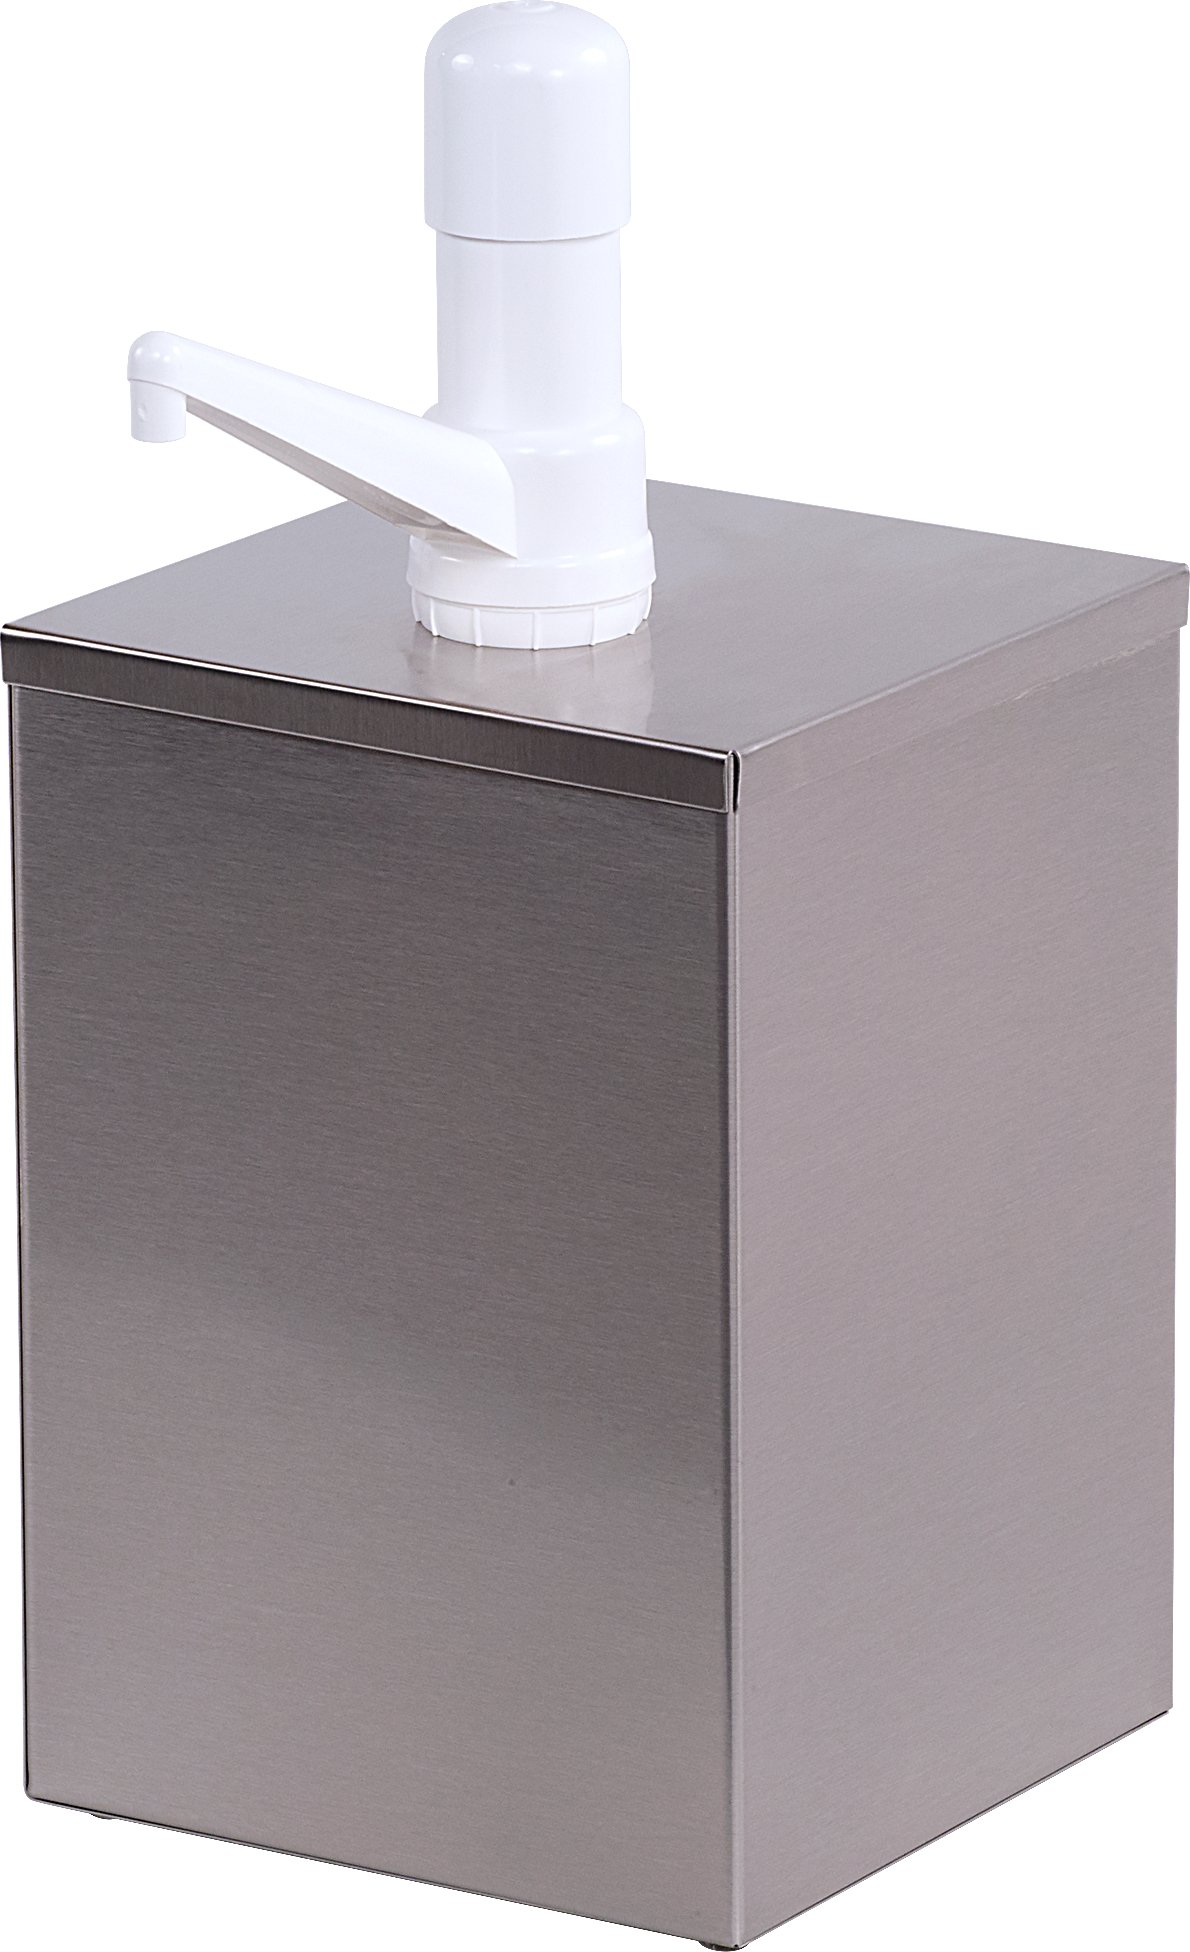 Carlisle 38601 7-1/4-Inch Stainless Steel High Volume Condiment Dispenser with Fixed Nozzle Pump by Carlisle